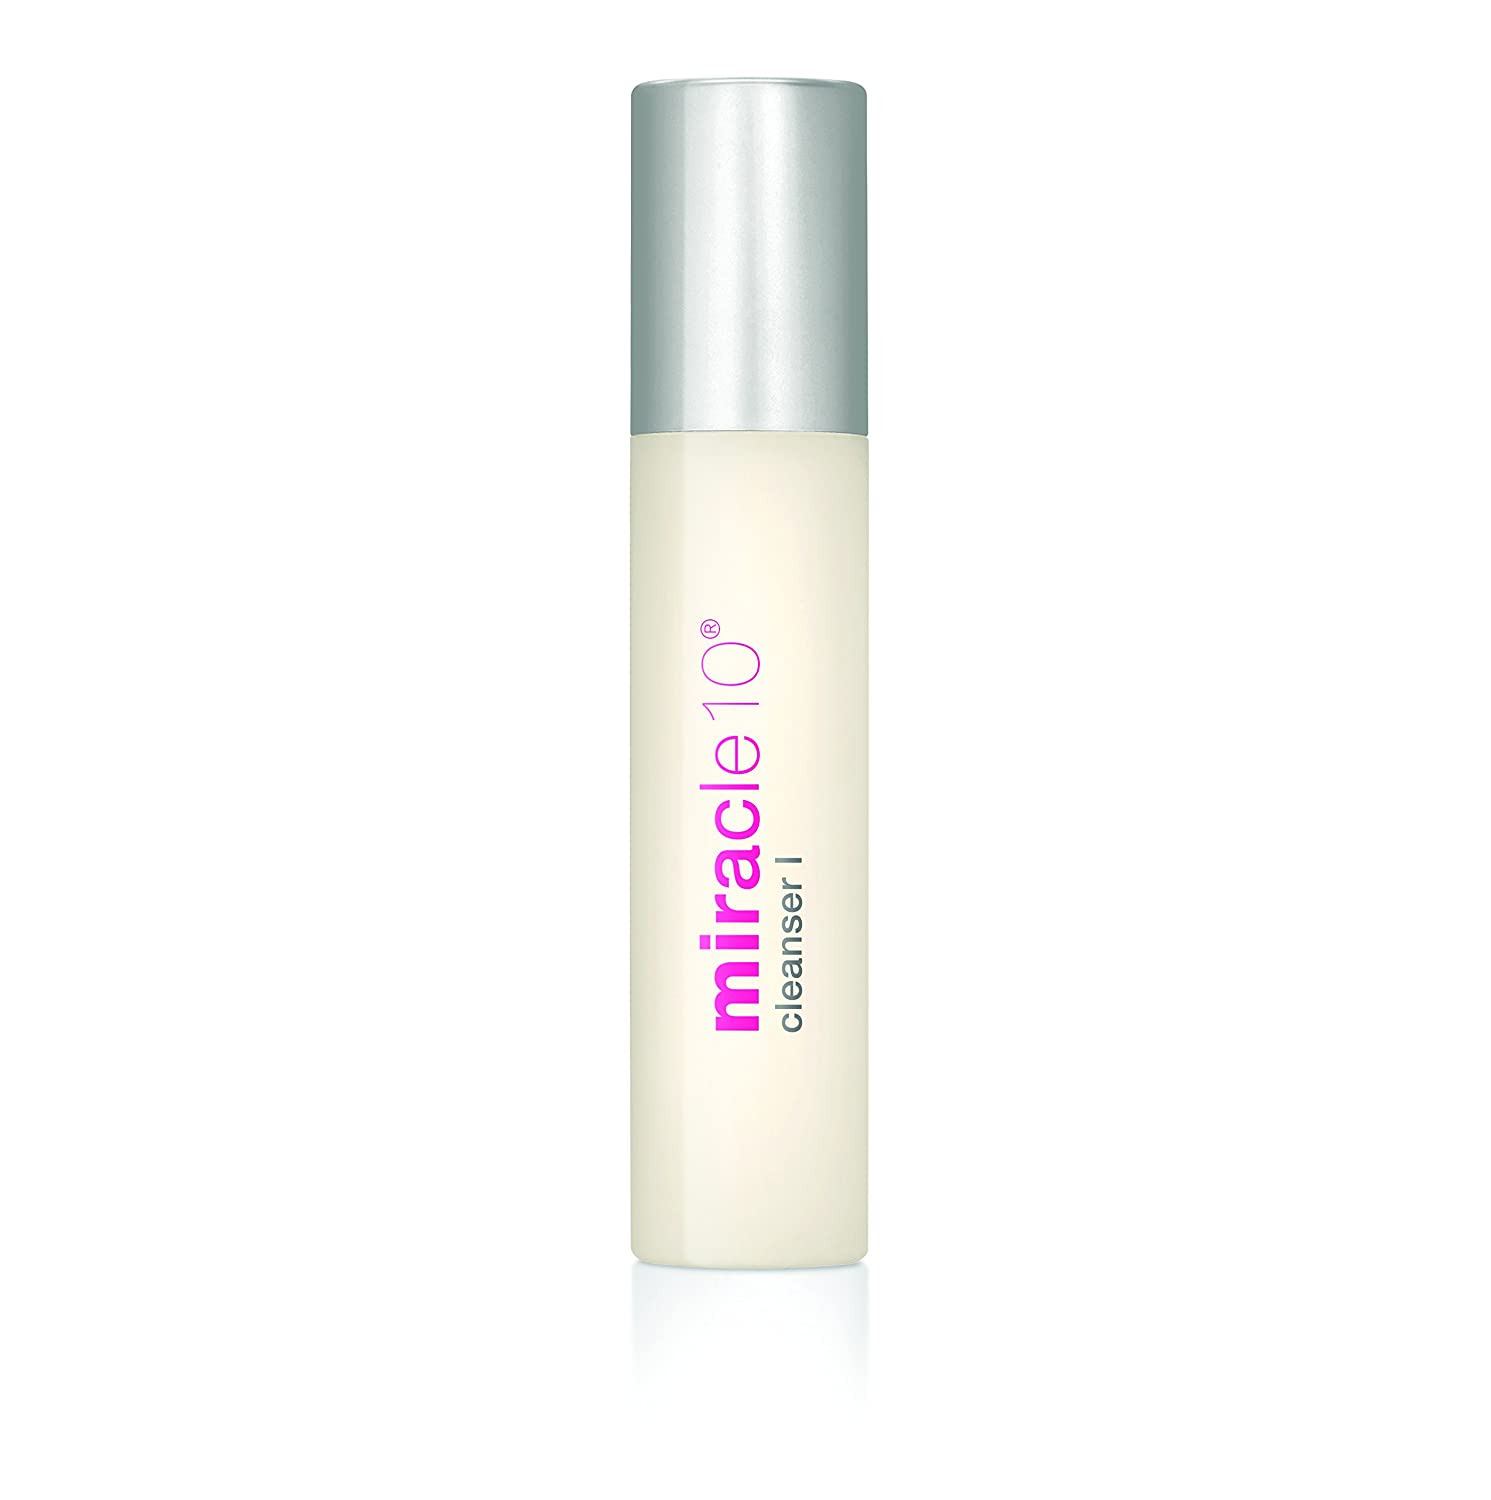 Miracle 10 Facial Cleanser: Cleanser I